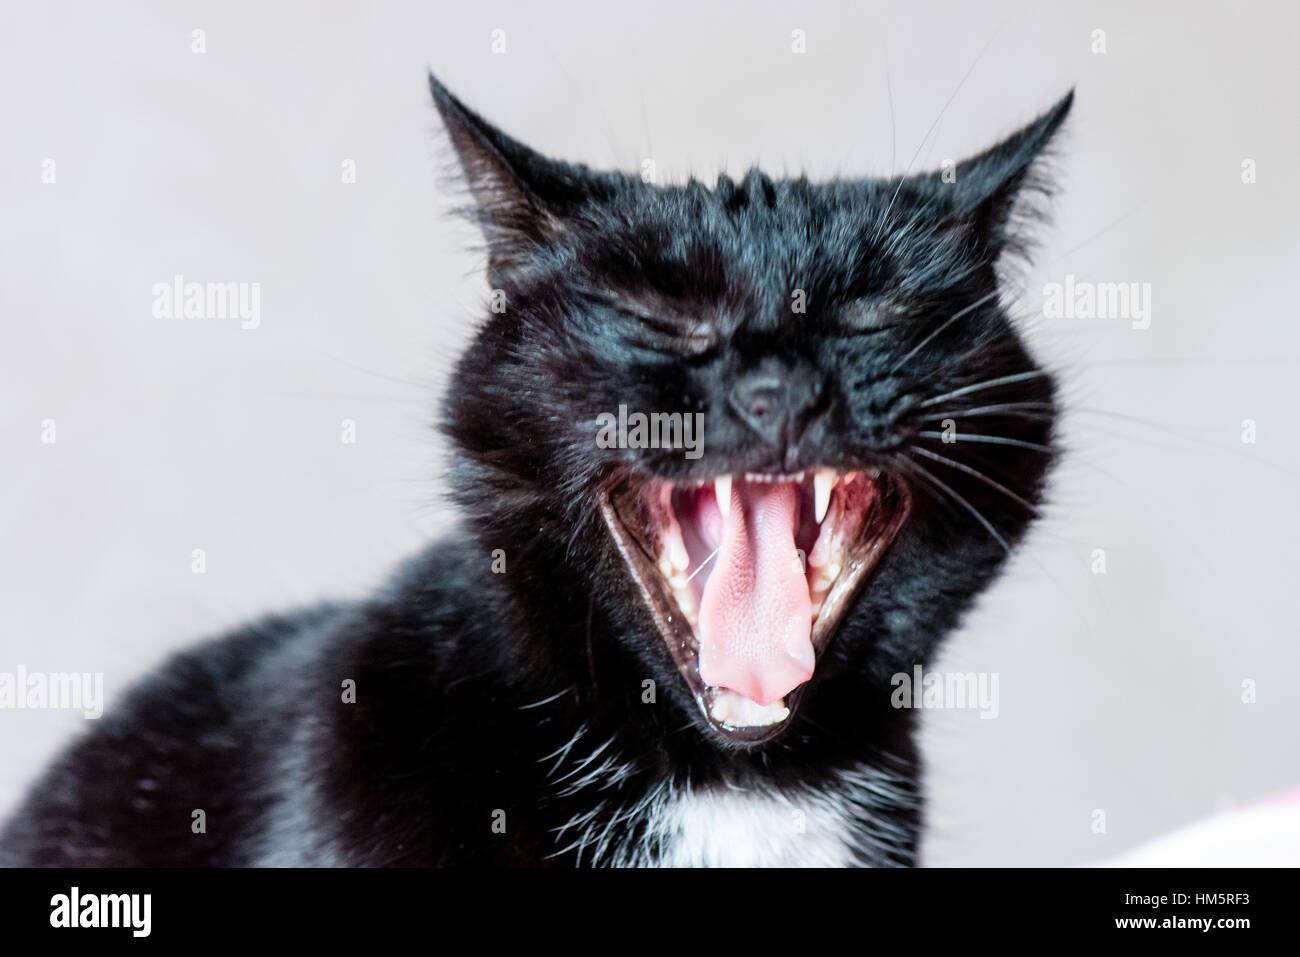 domestic cat sleeping close-up shot - Stock Image